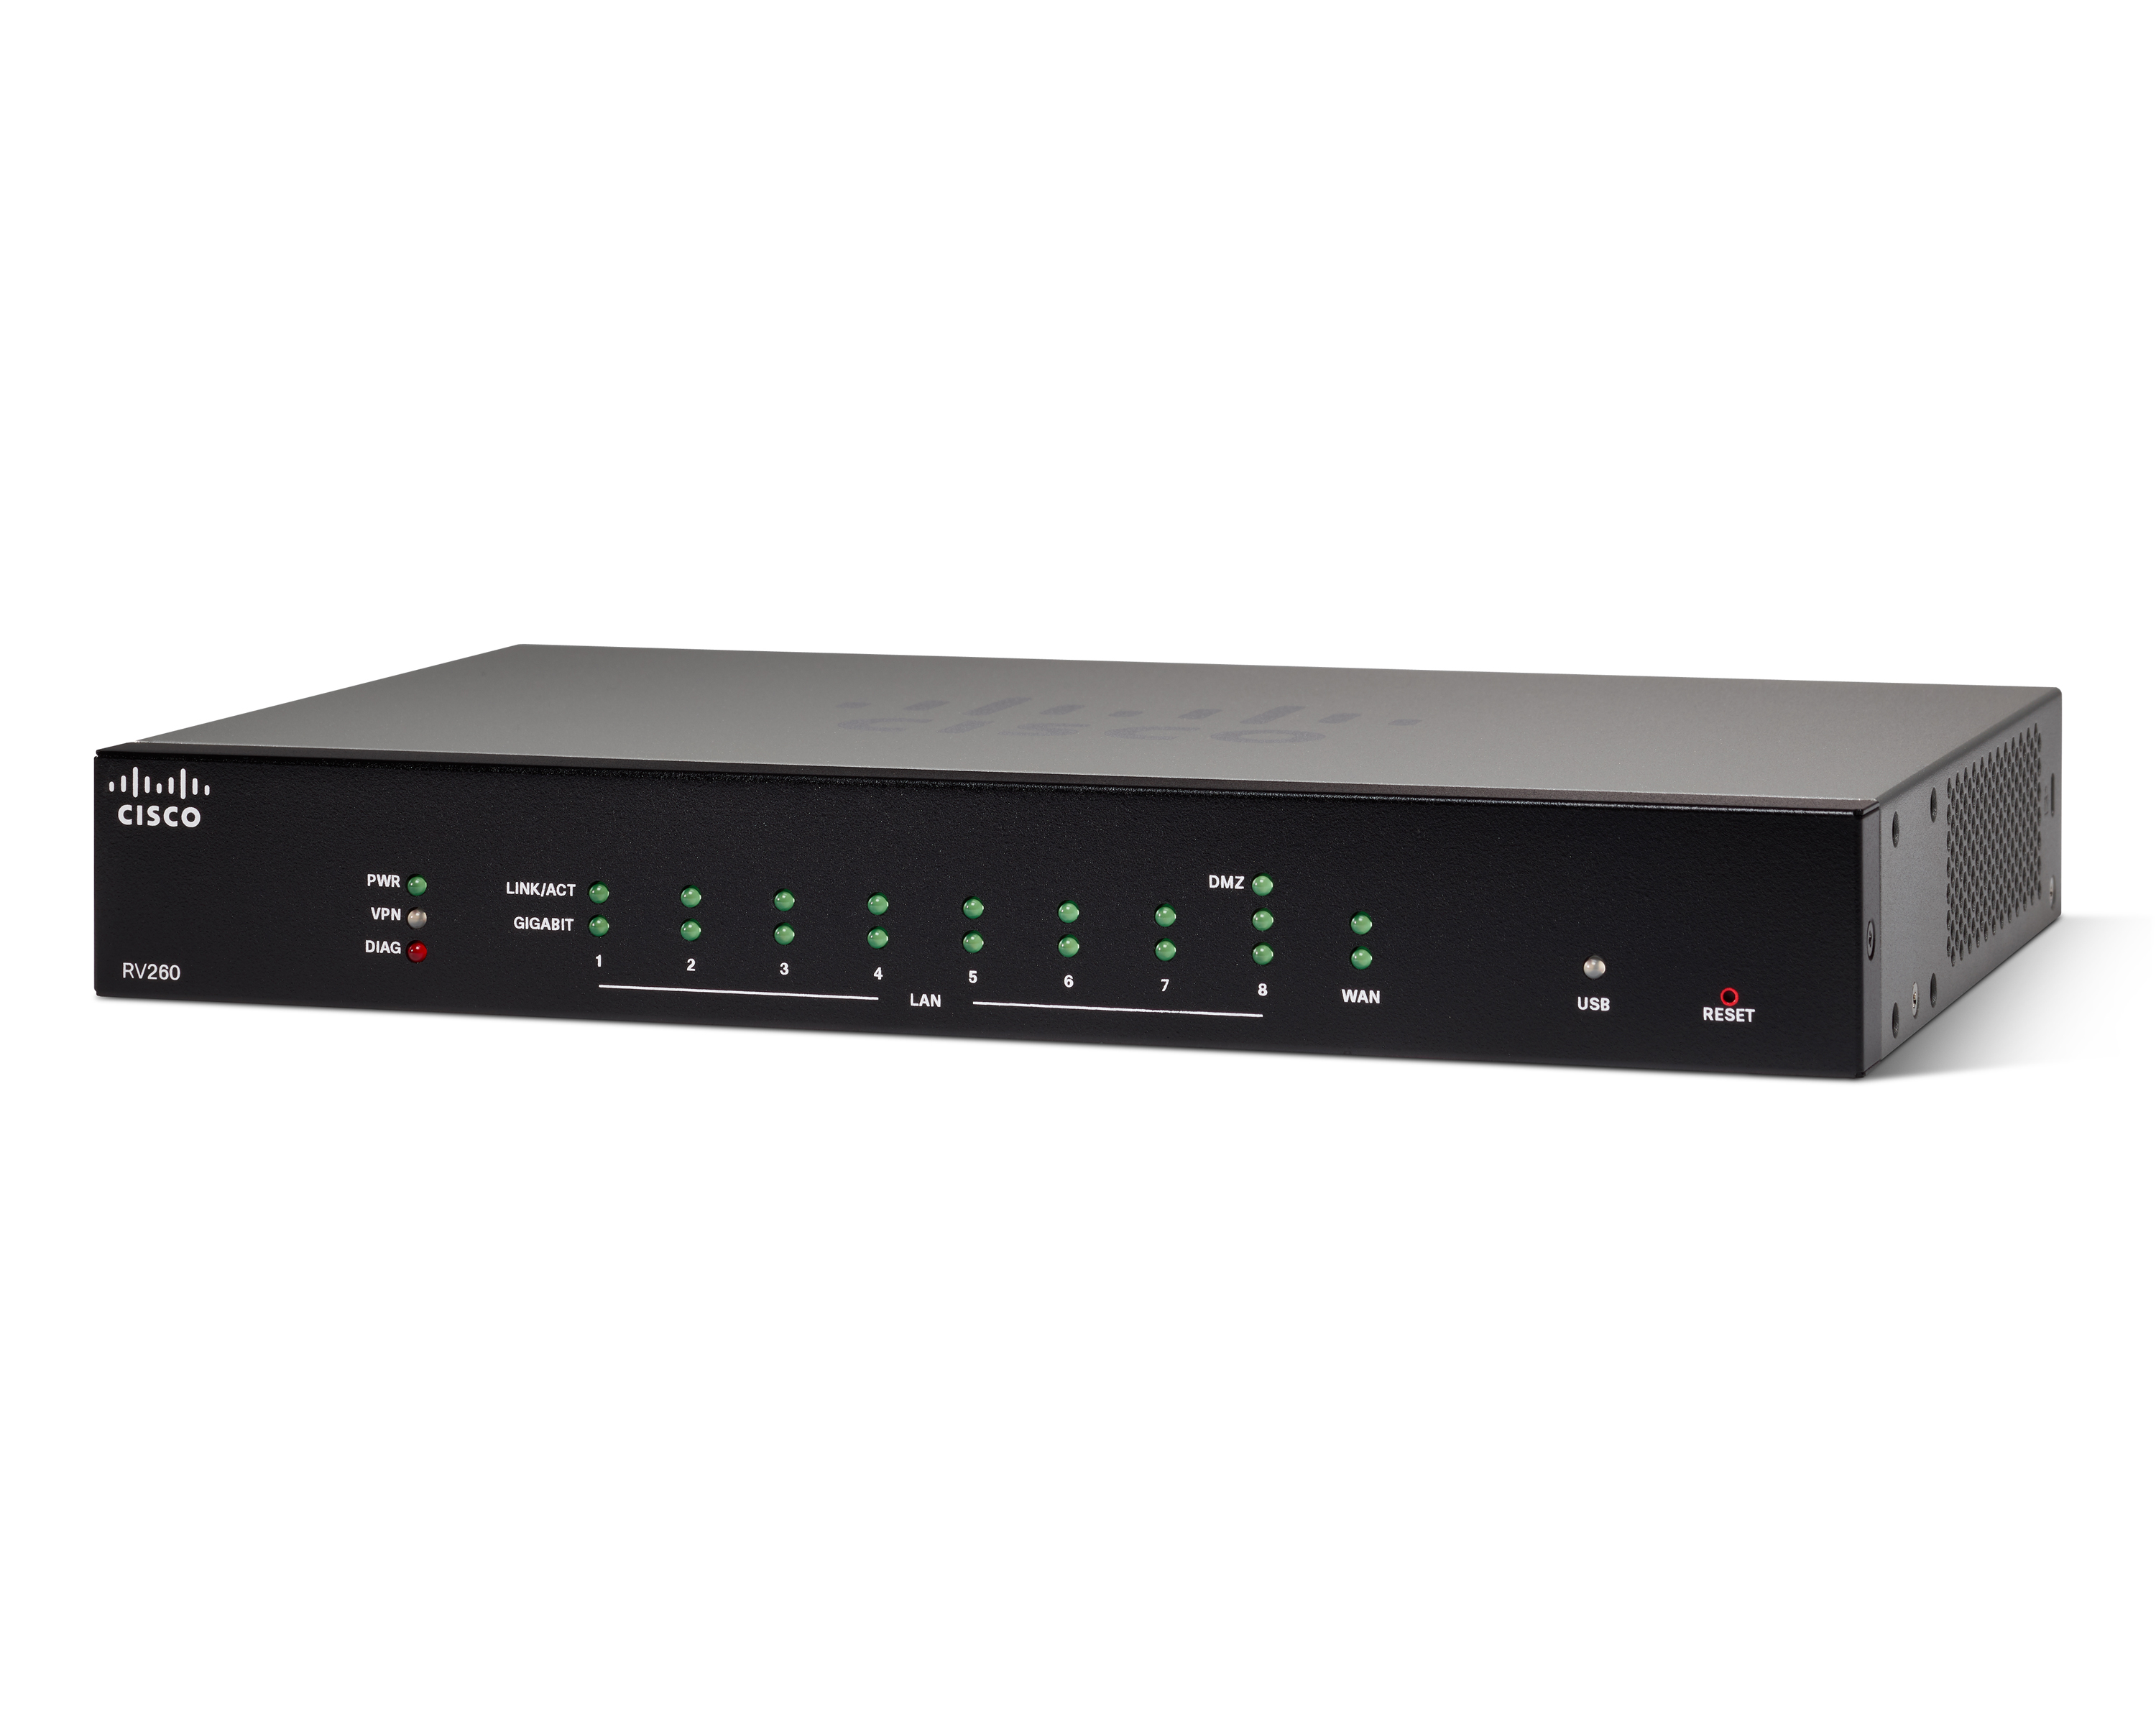 RV Series Routers Online Device Emulato...